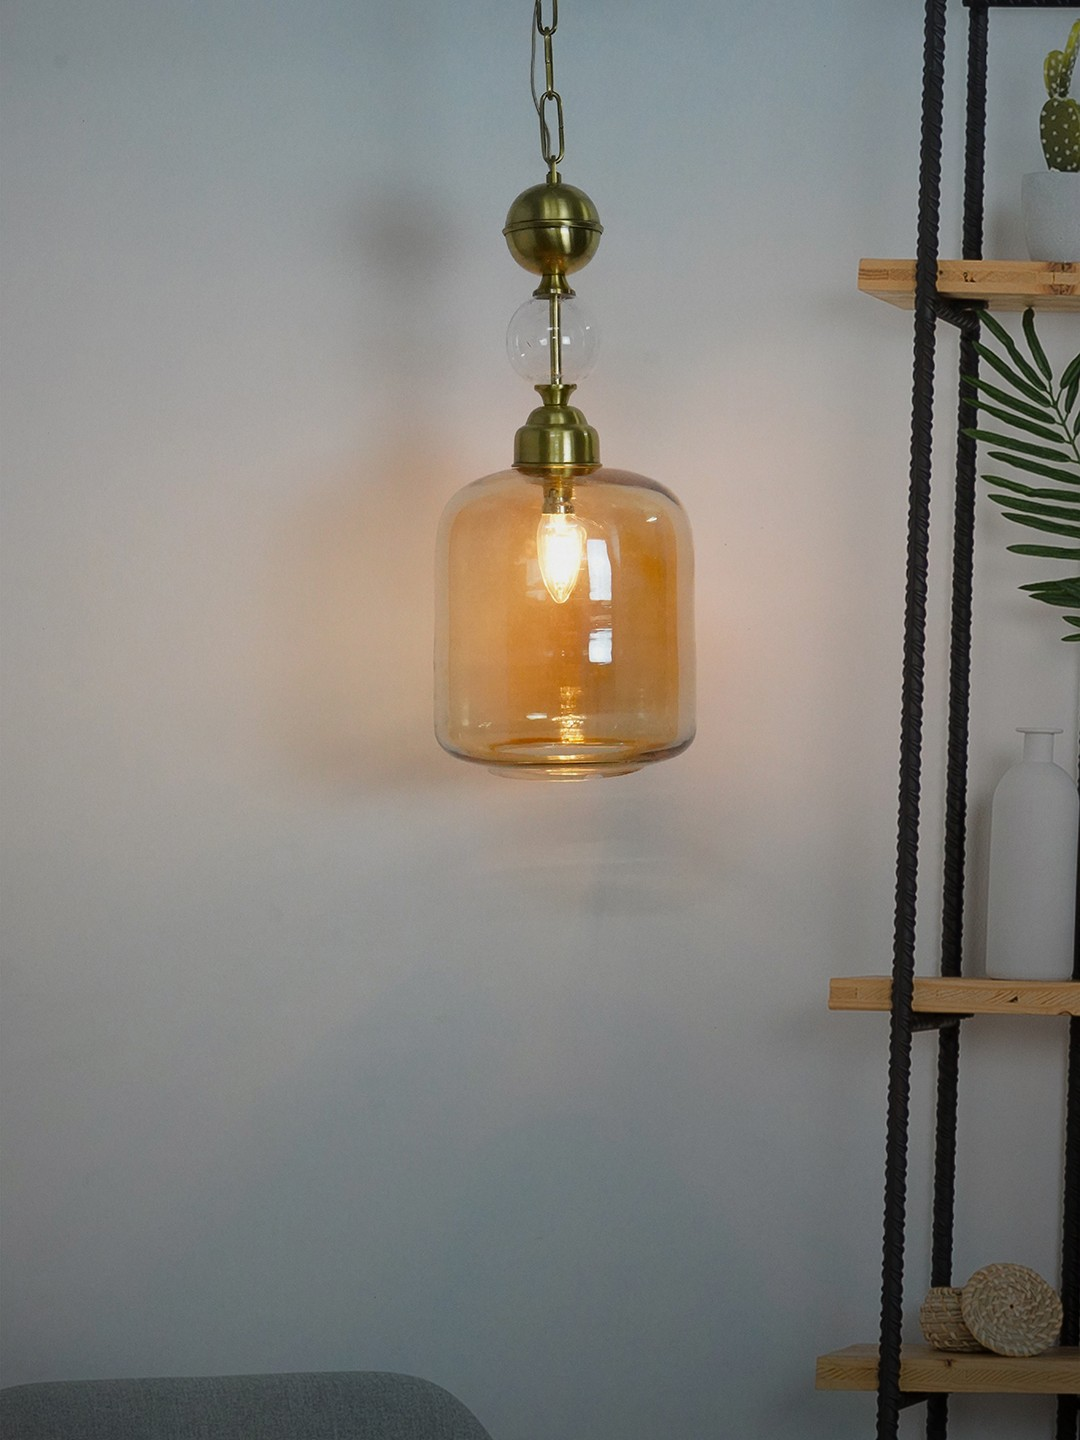 Translucent Golden Glass Jar Hanging Lantern